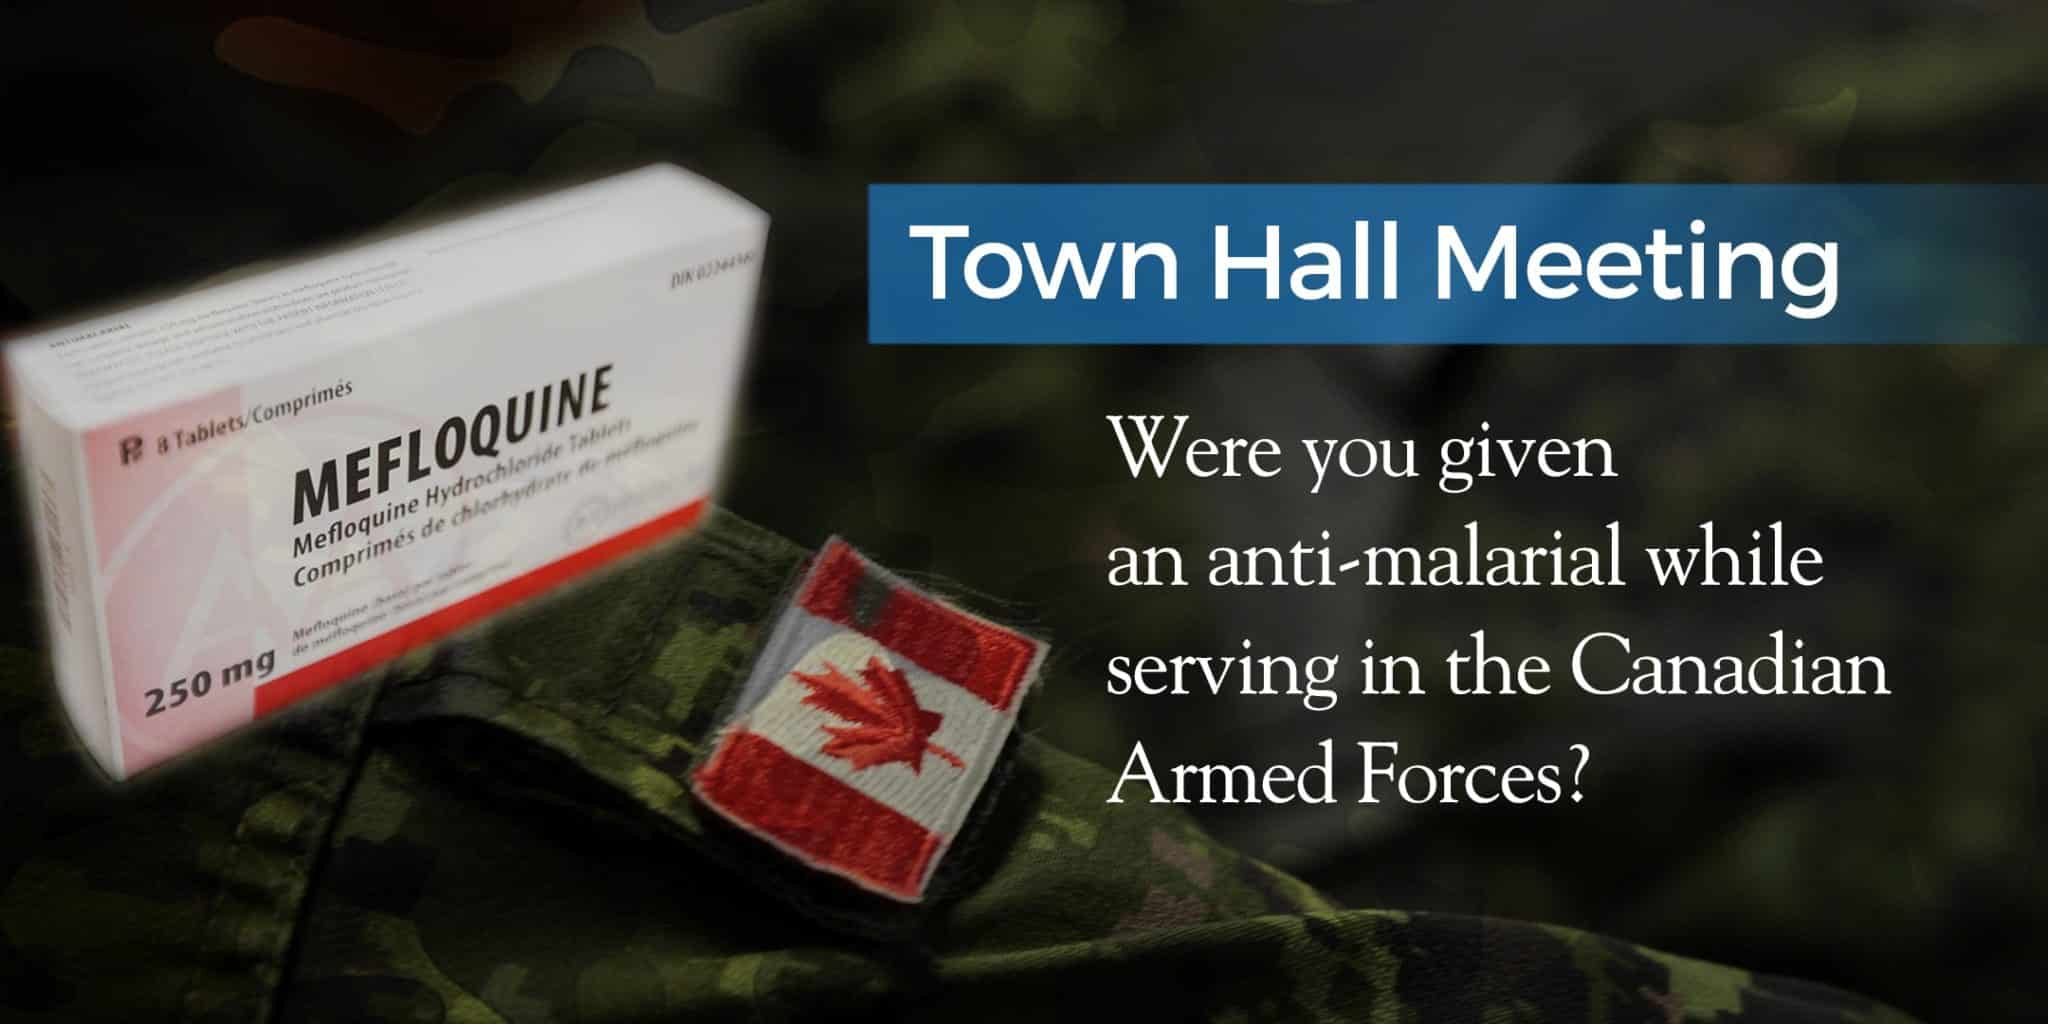 February 10, 2019:  Mefloquine Town Hall Meeting, Toronto